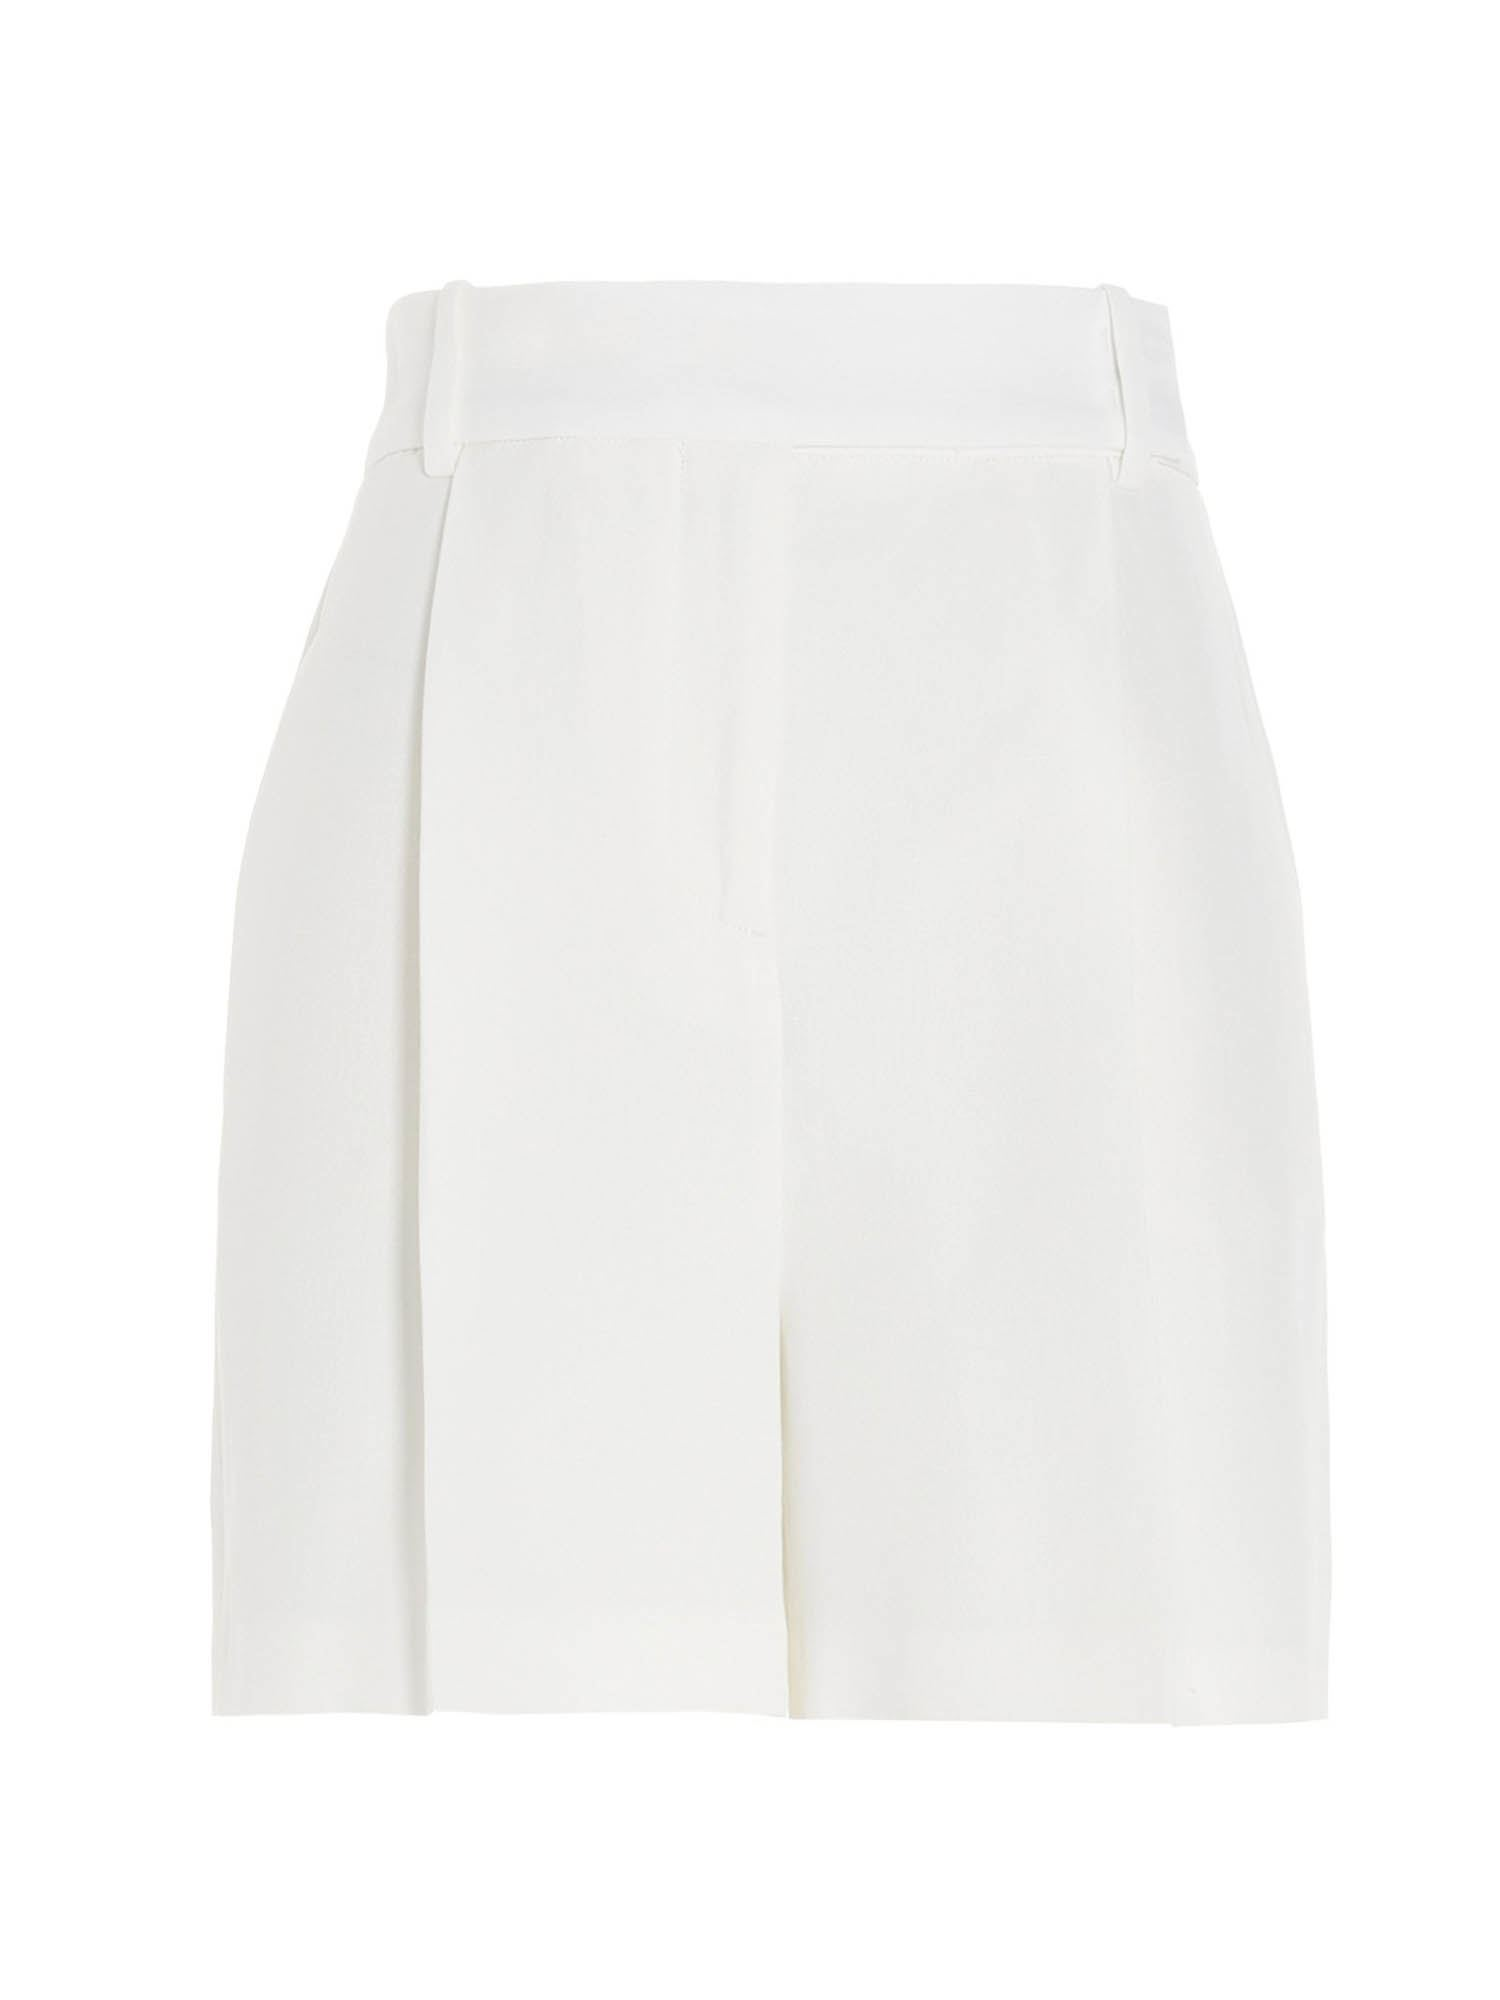 Ermanno Scervino LINEN BLEND SHORTS IN WHITE